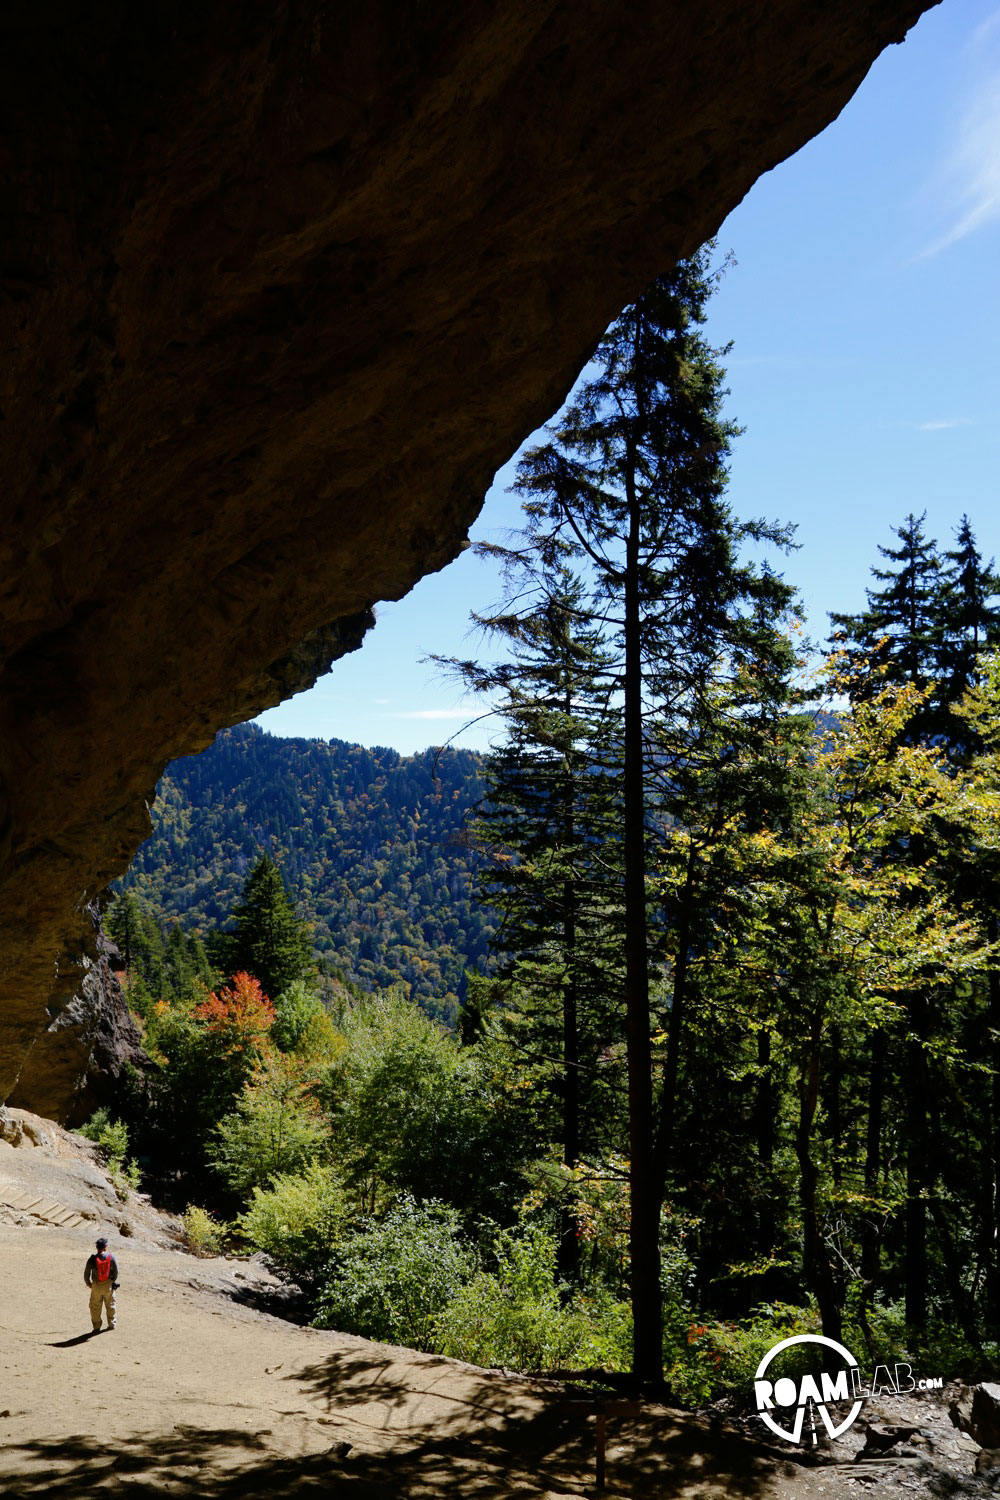 View from under the rock overhang known as Alum Cave in the Great Smoky Mountains National Park.